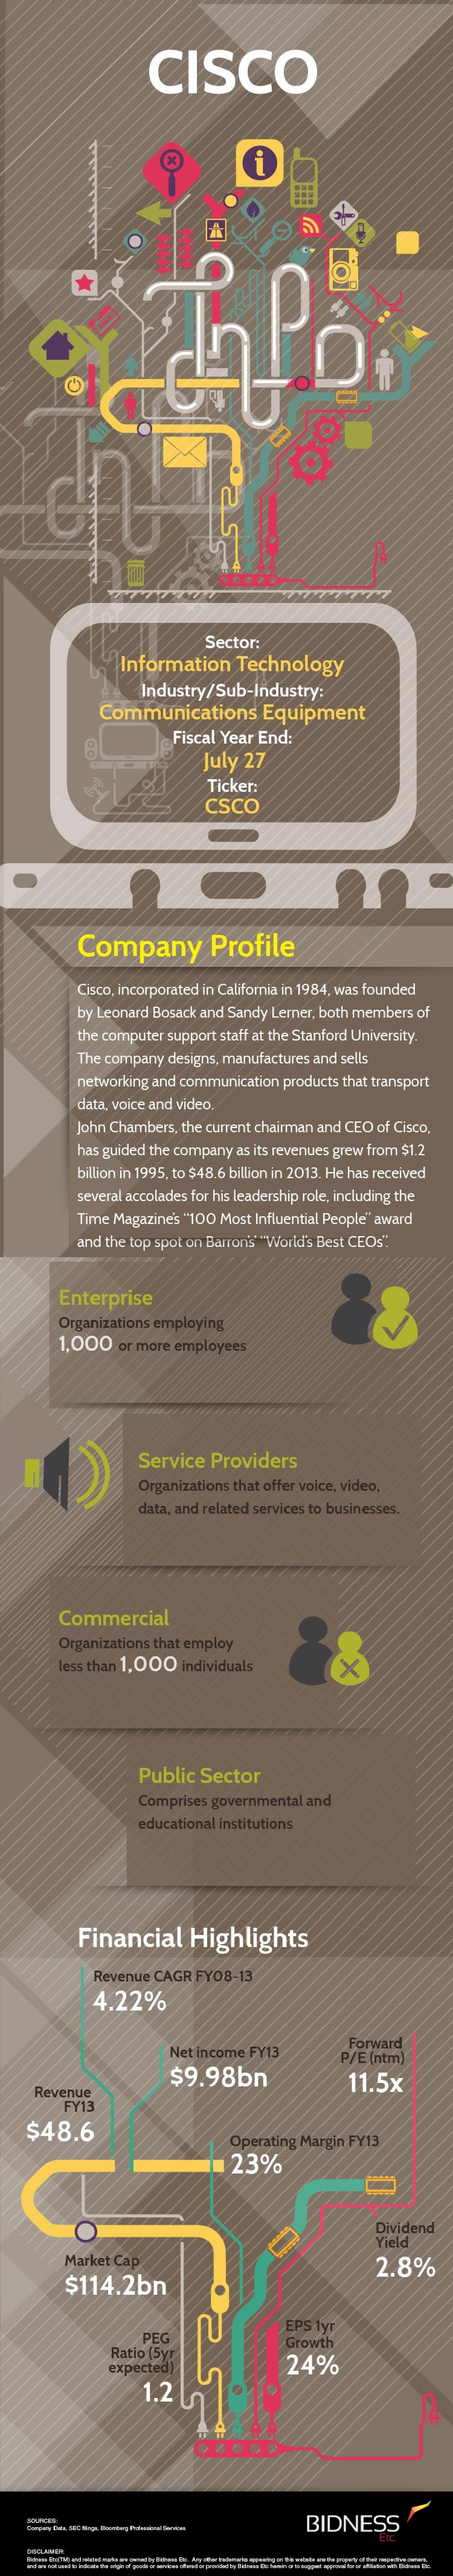 Cisco (CSCO) Company Description Infographic